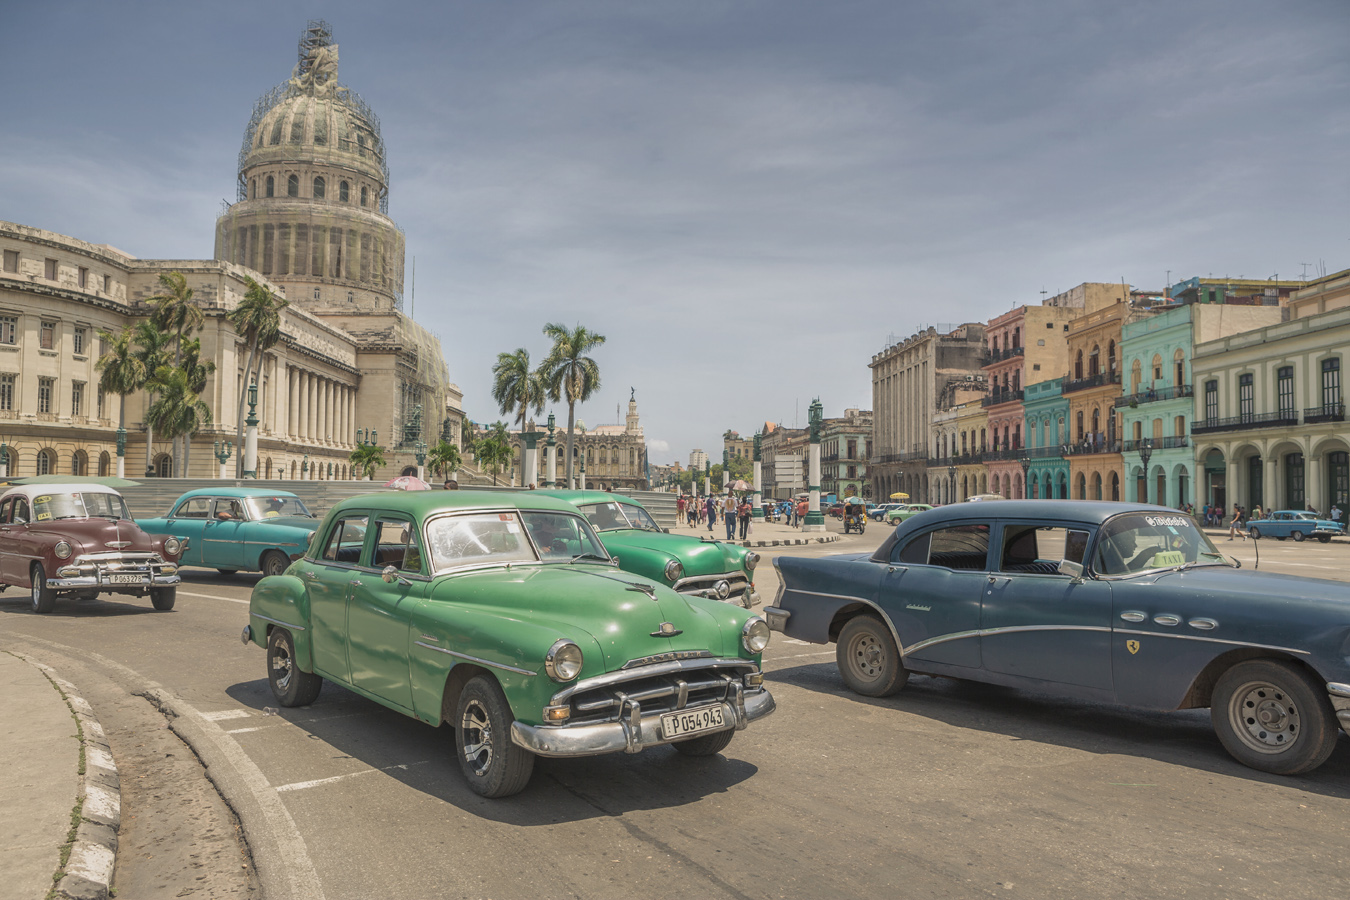 capital building in Havana with old cars